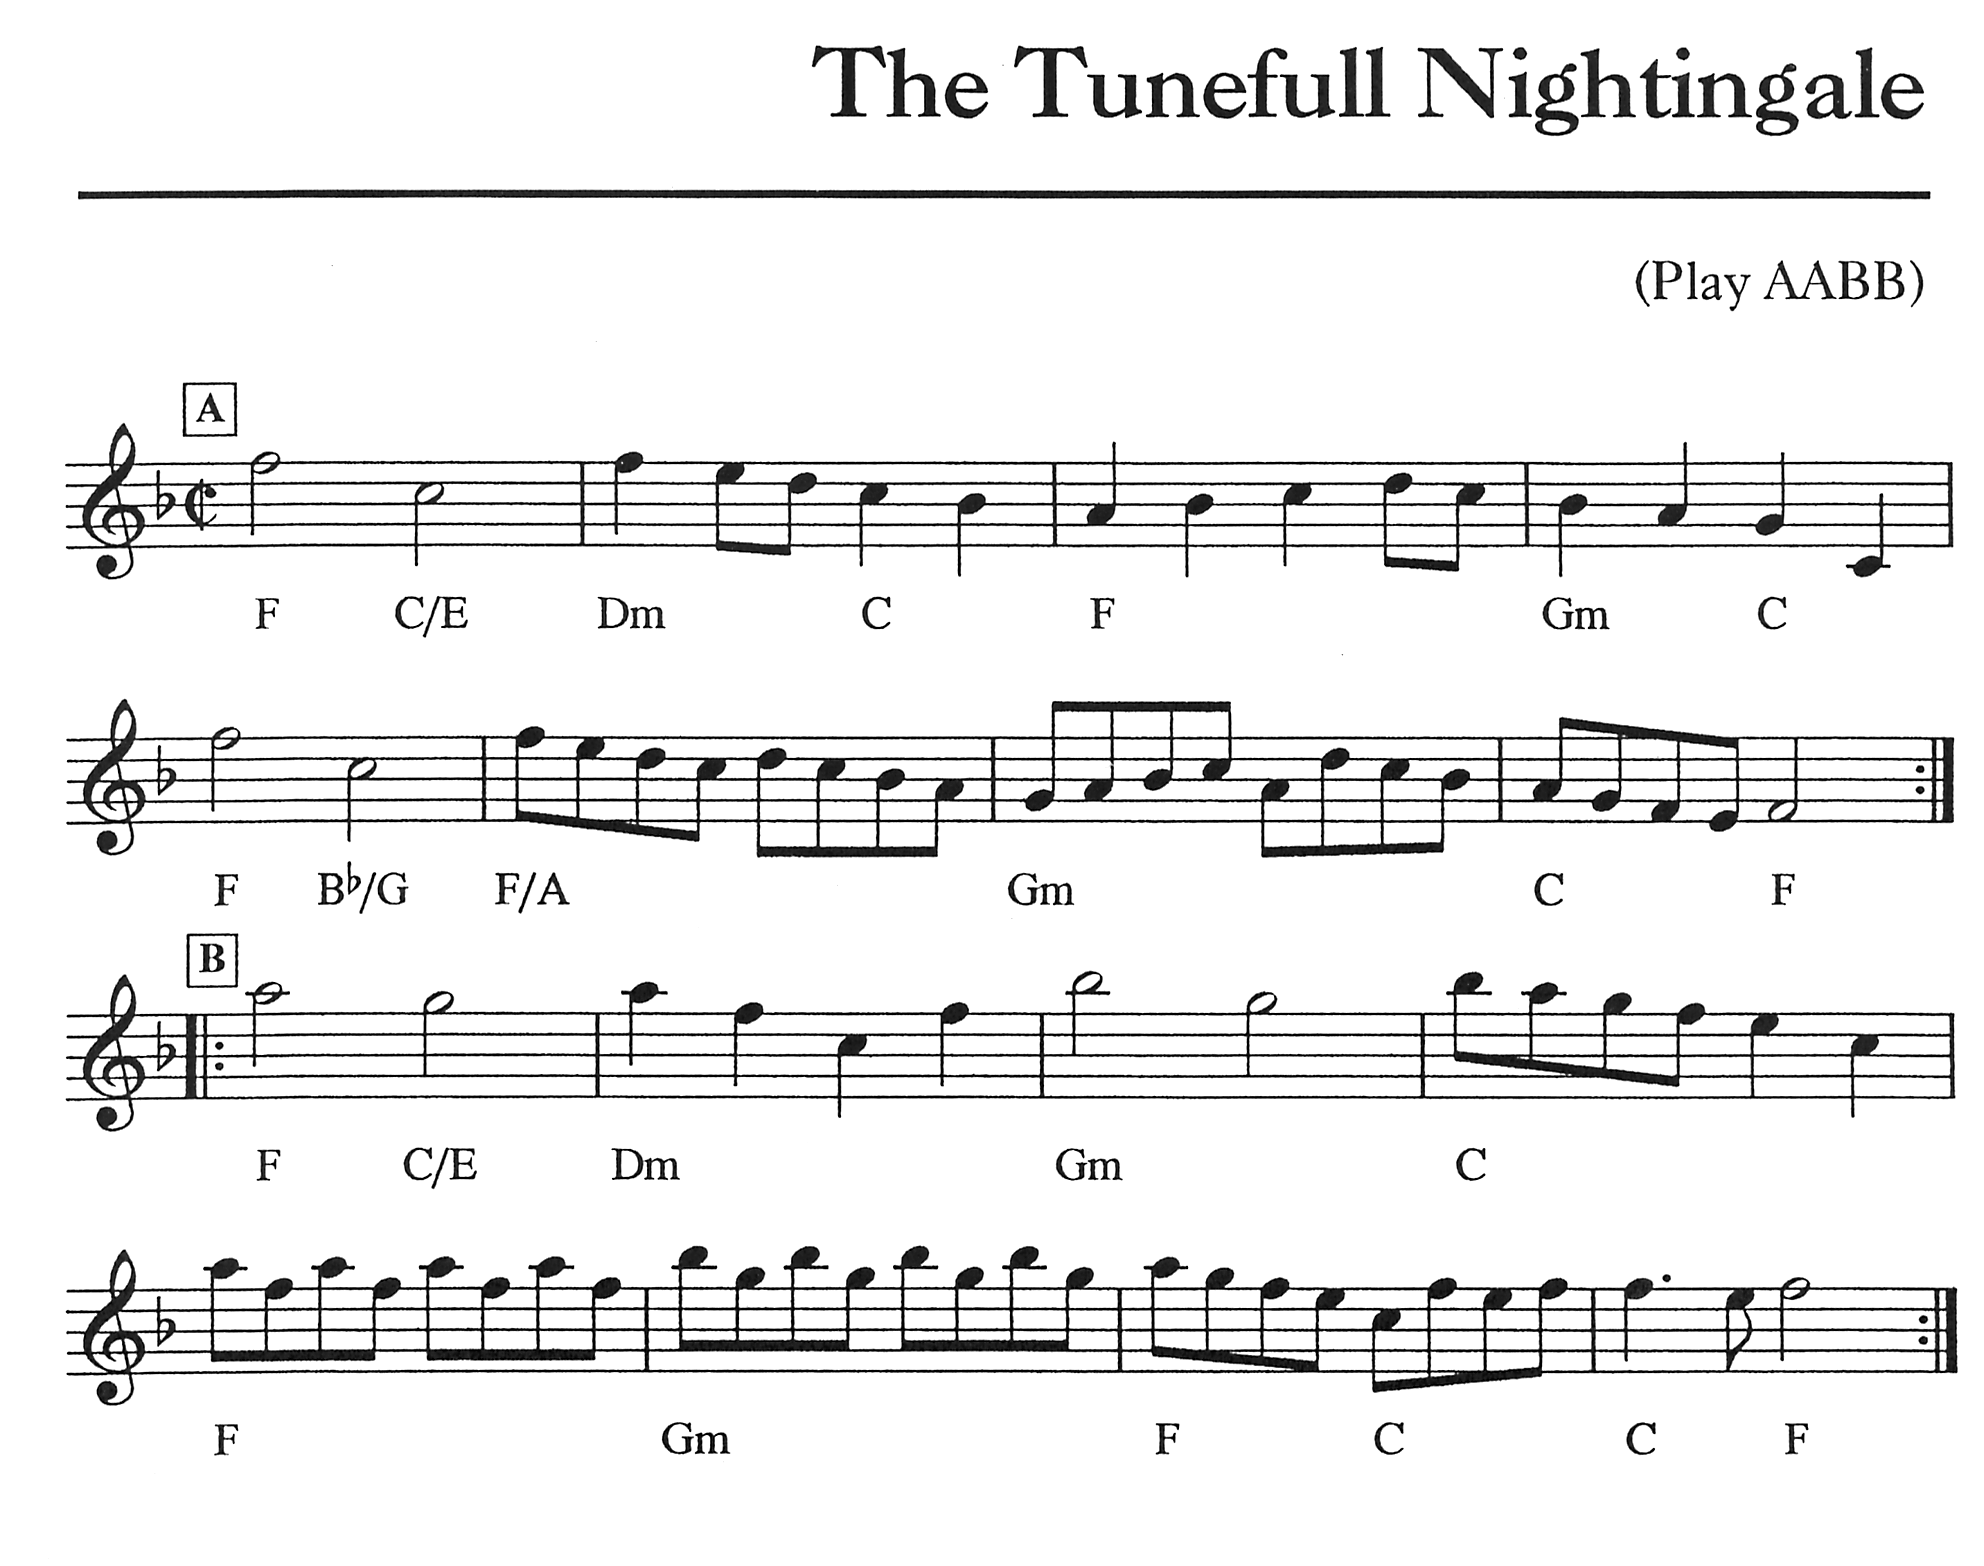 The Tuneful Nightingale